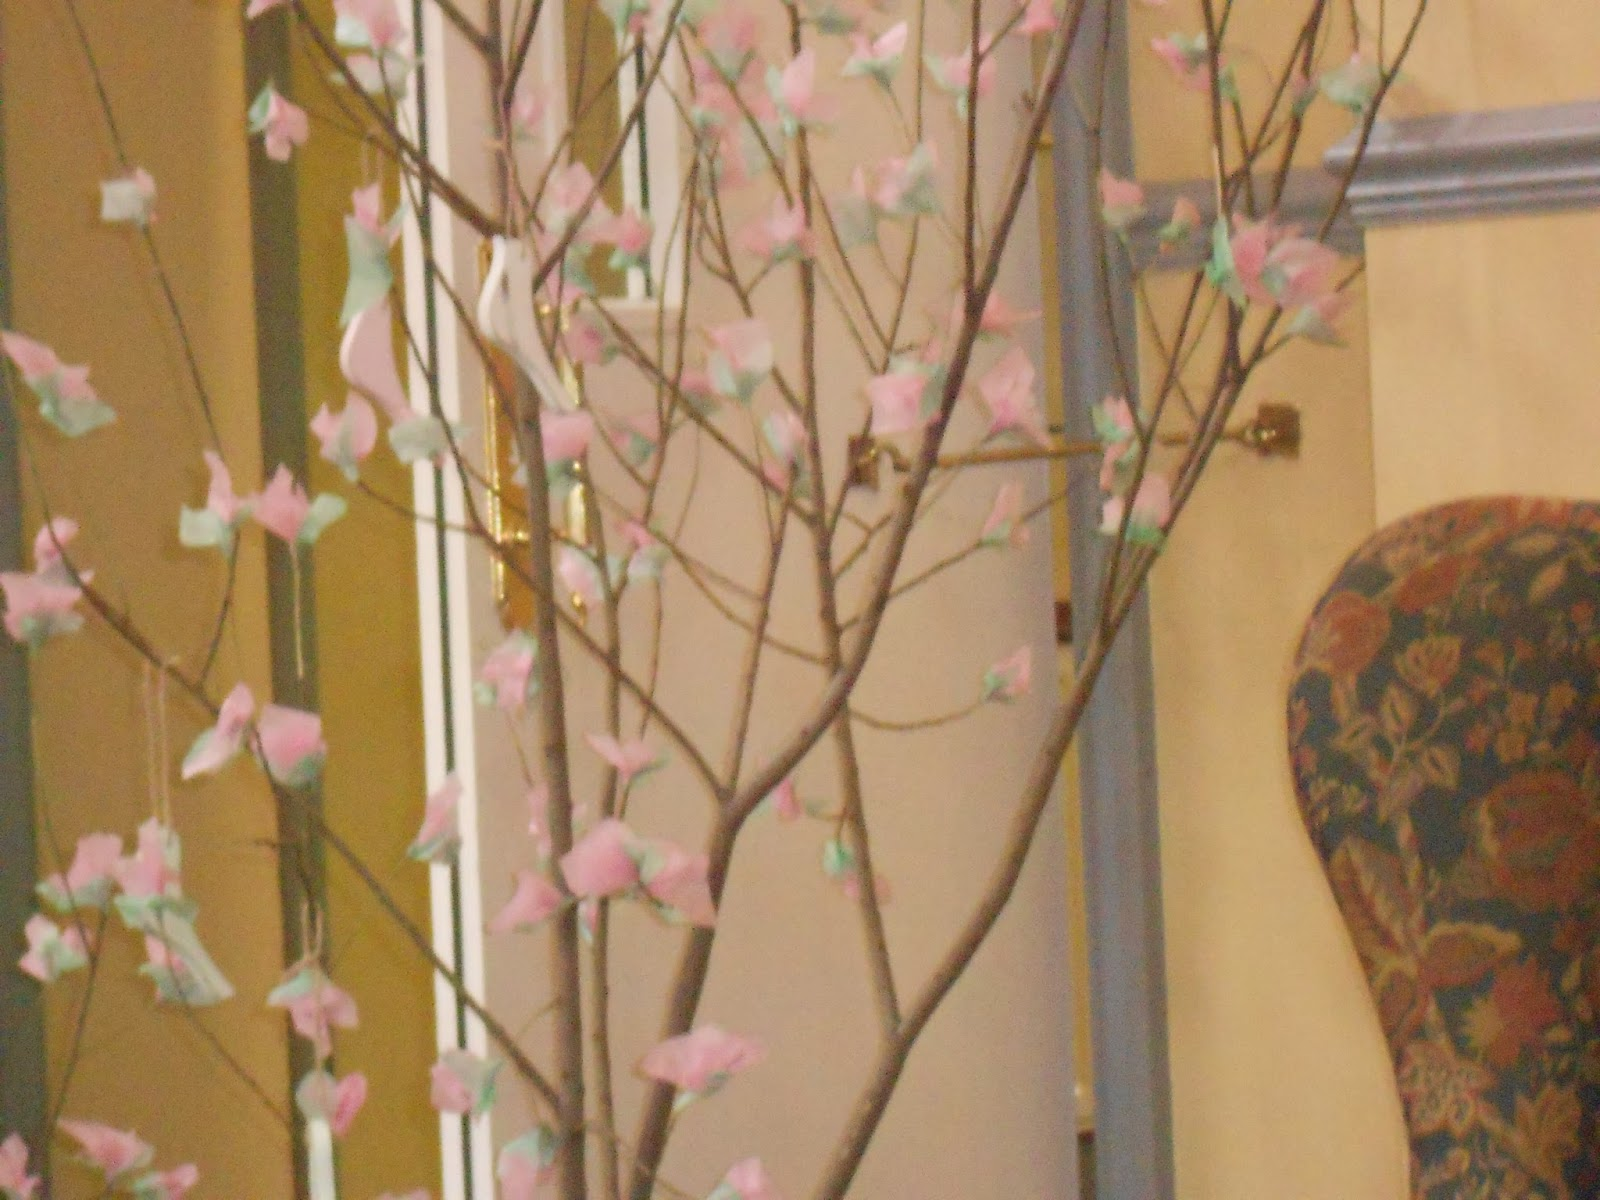 diy cherry blosssom tree, tissue blossoms